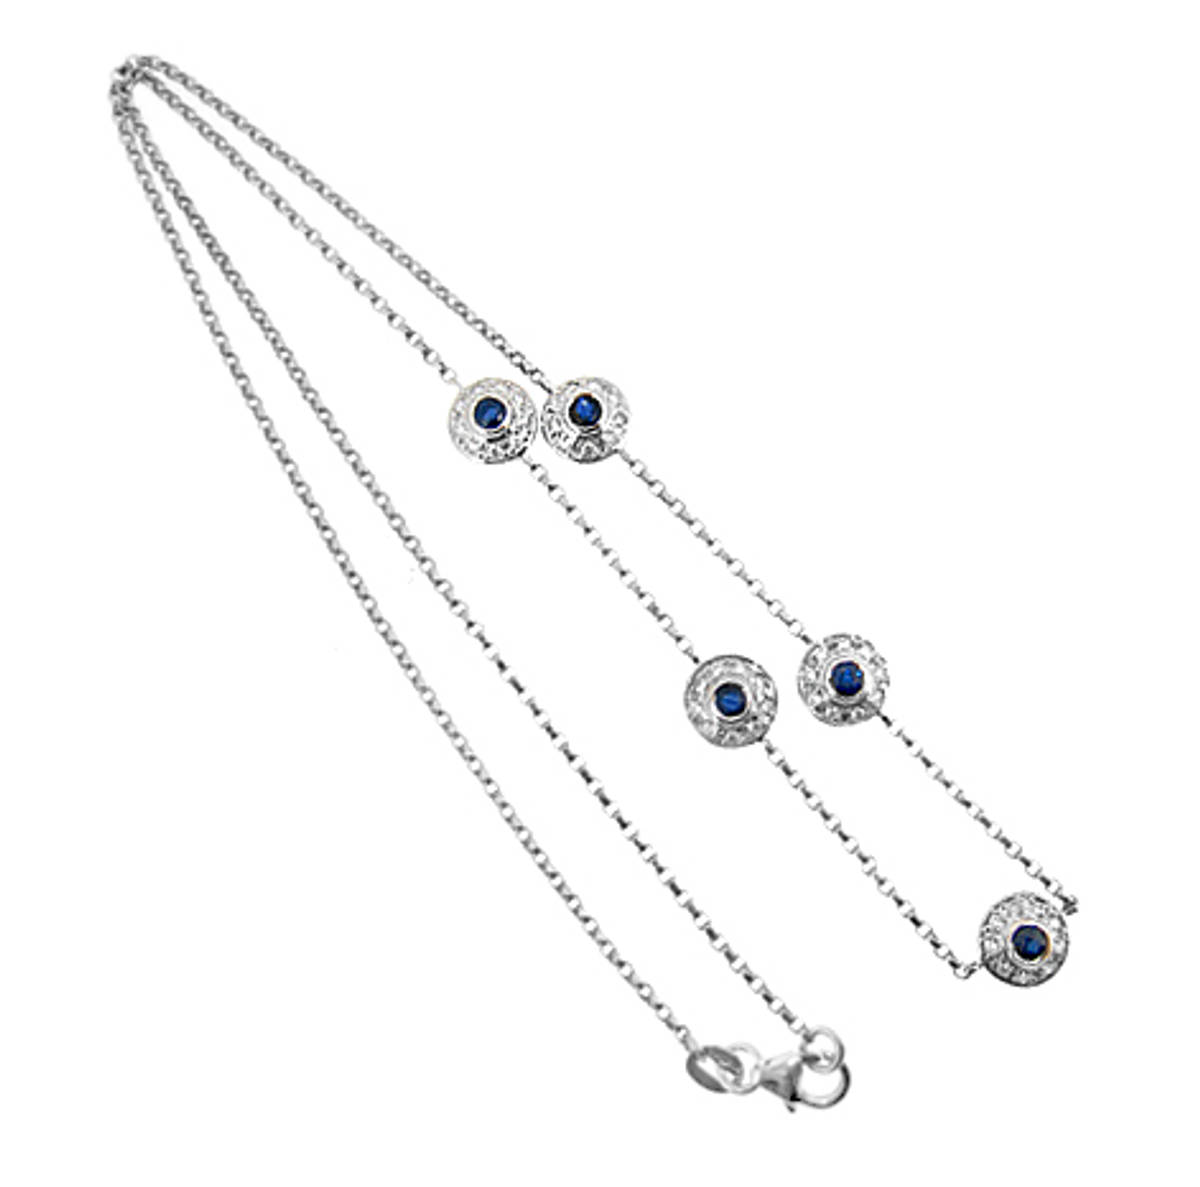 Sapphire and diamond cluster necklacePictured item: 0.40ct diamonds/0.50ct sapphire set in 18k white gold